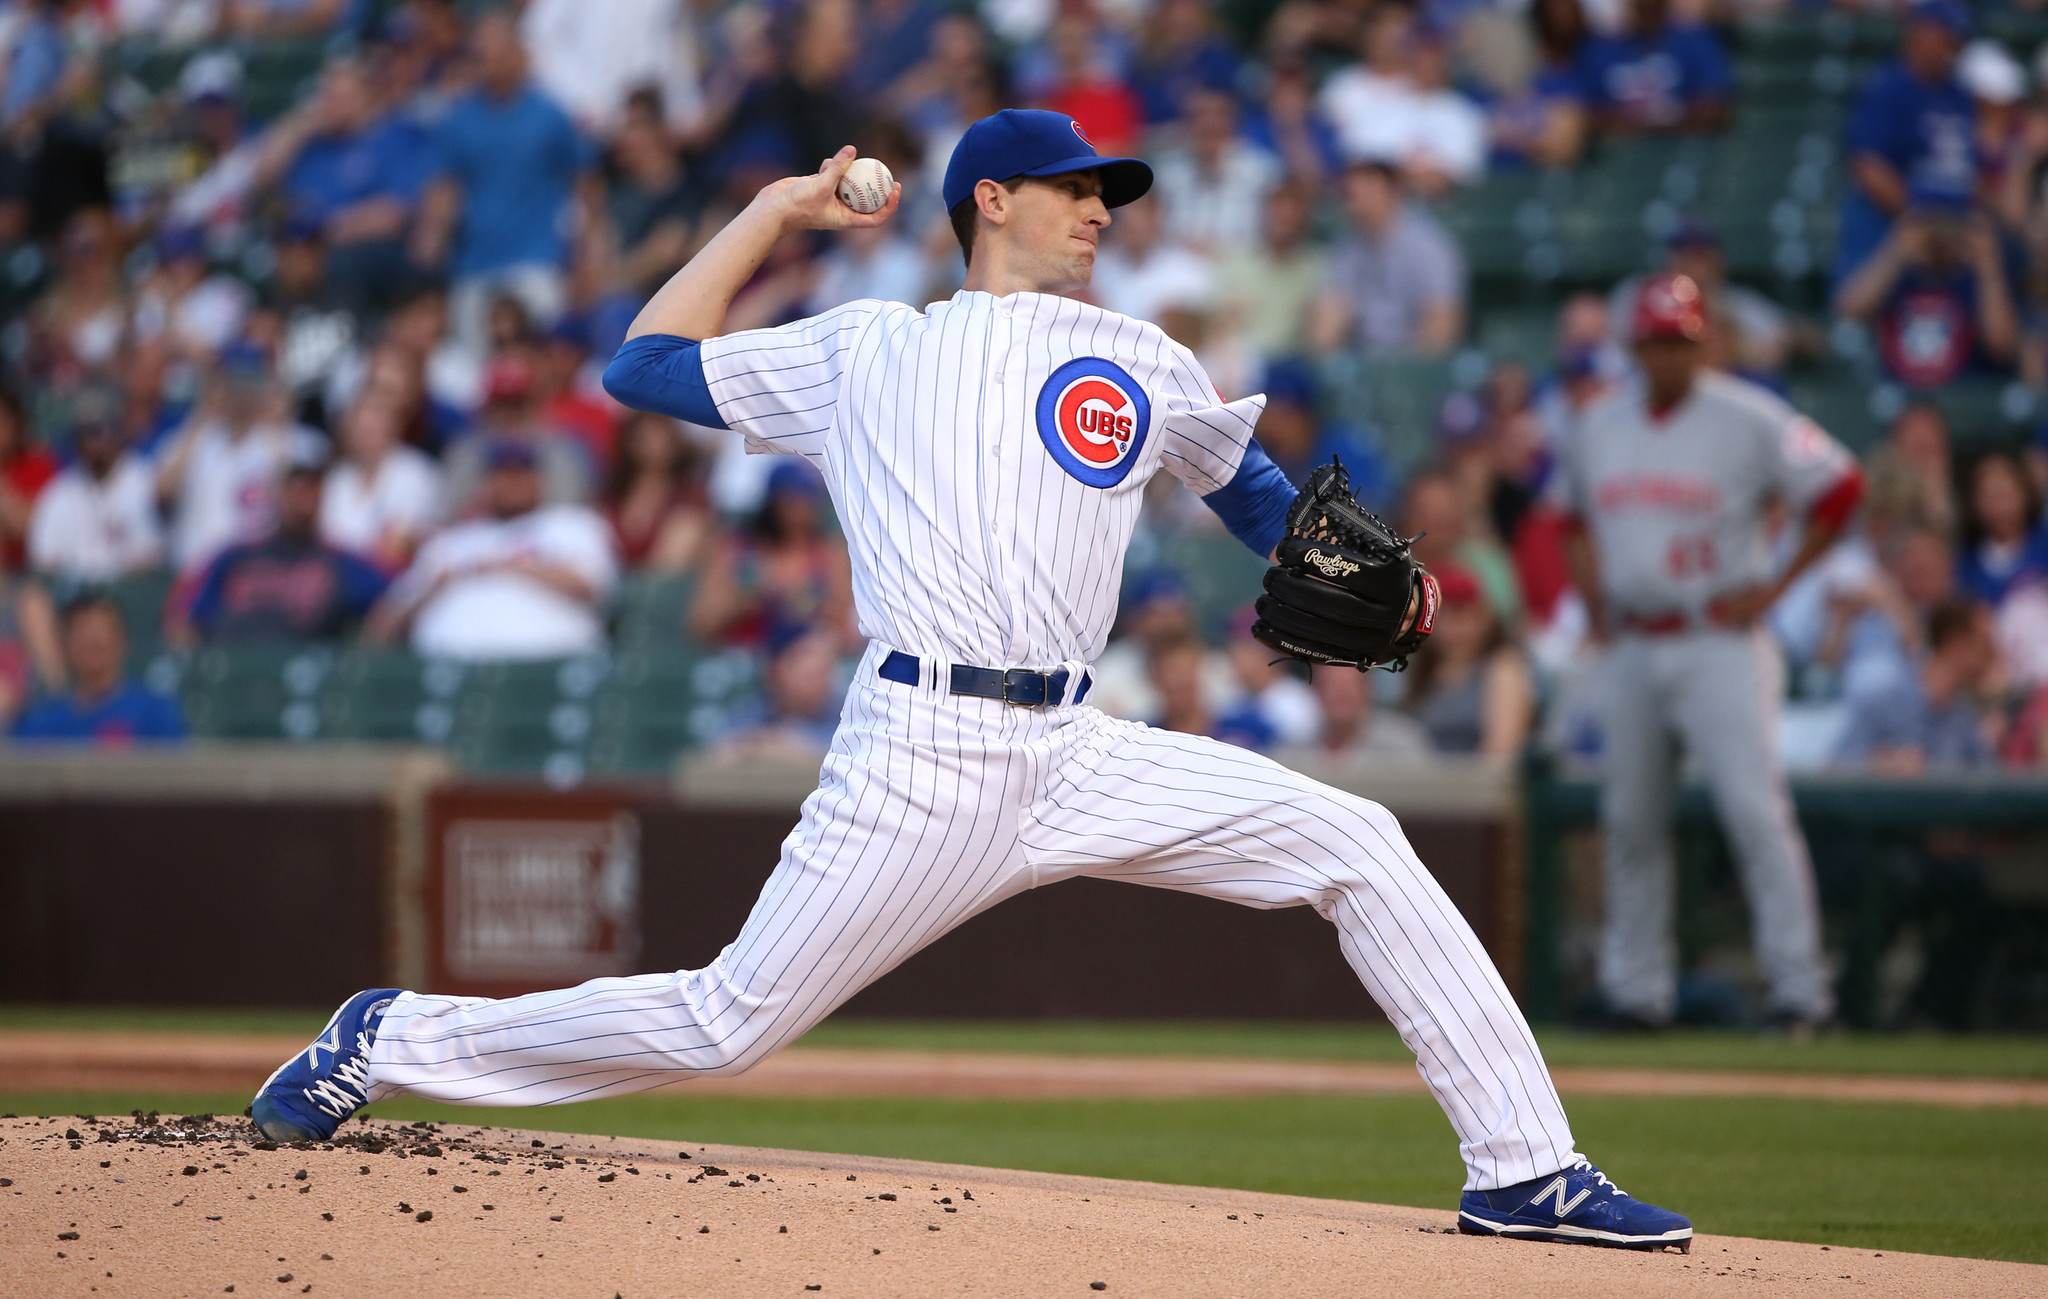 Ct-notes-cubs-giants-spt-0524-20170523